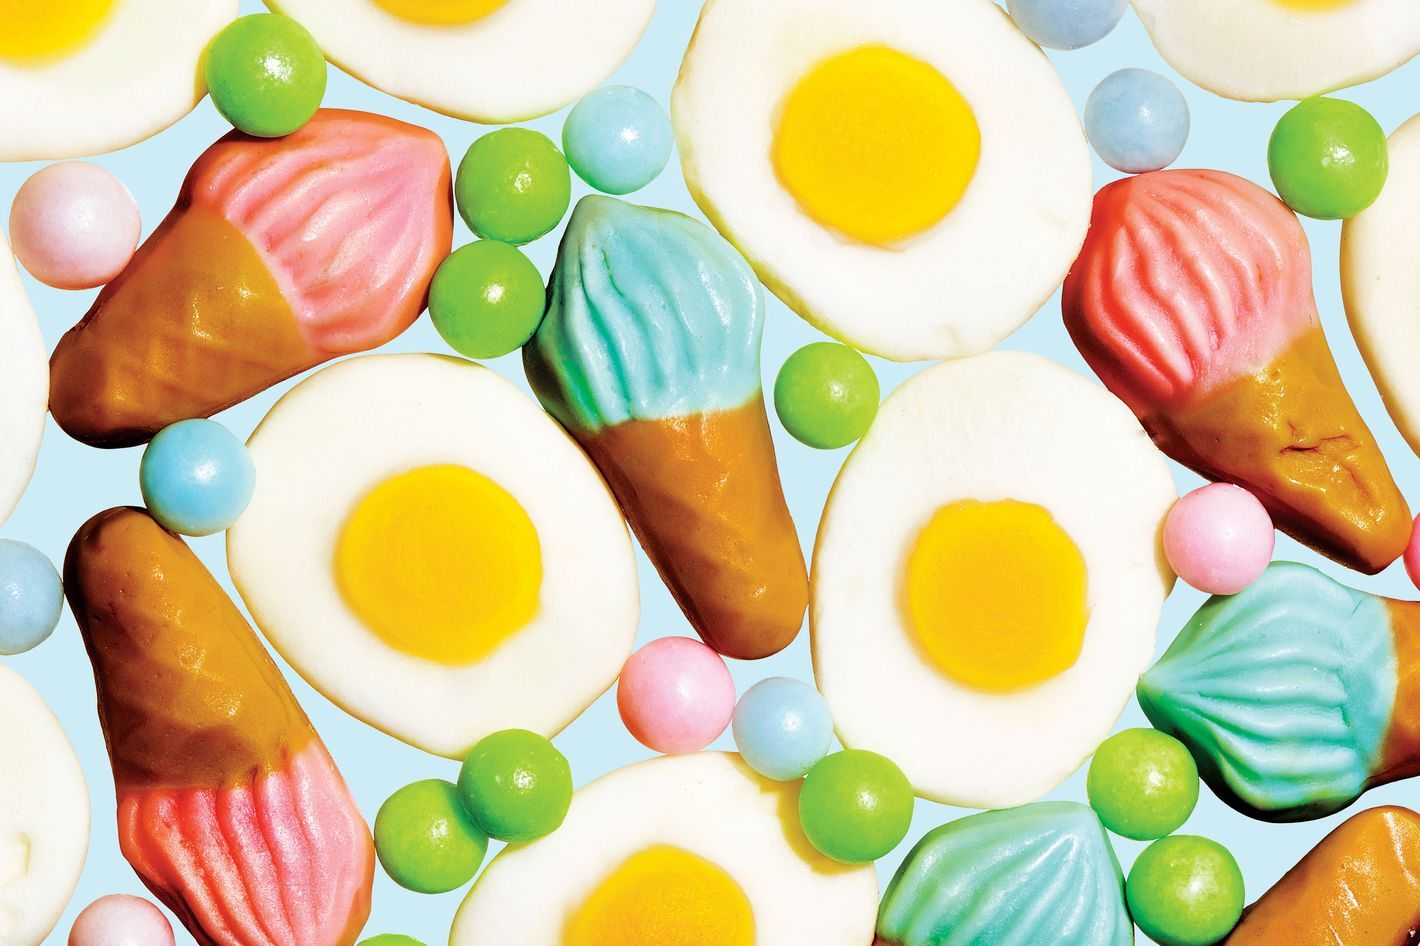 http://pixel.nymag.com/imgs/daily/grub/2014/08/04/magazine/07-candy-opener.jpg